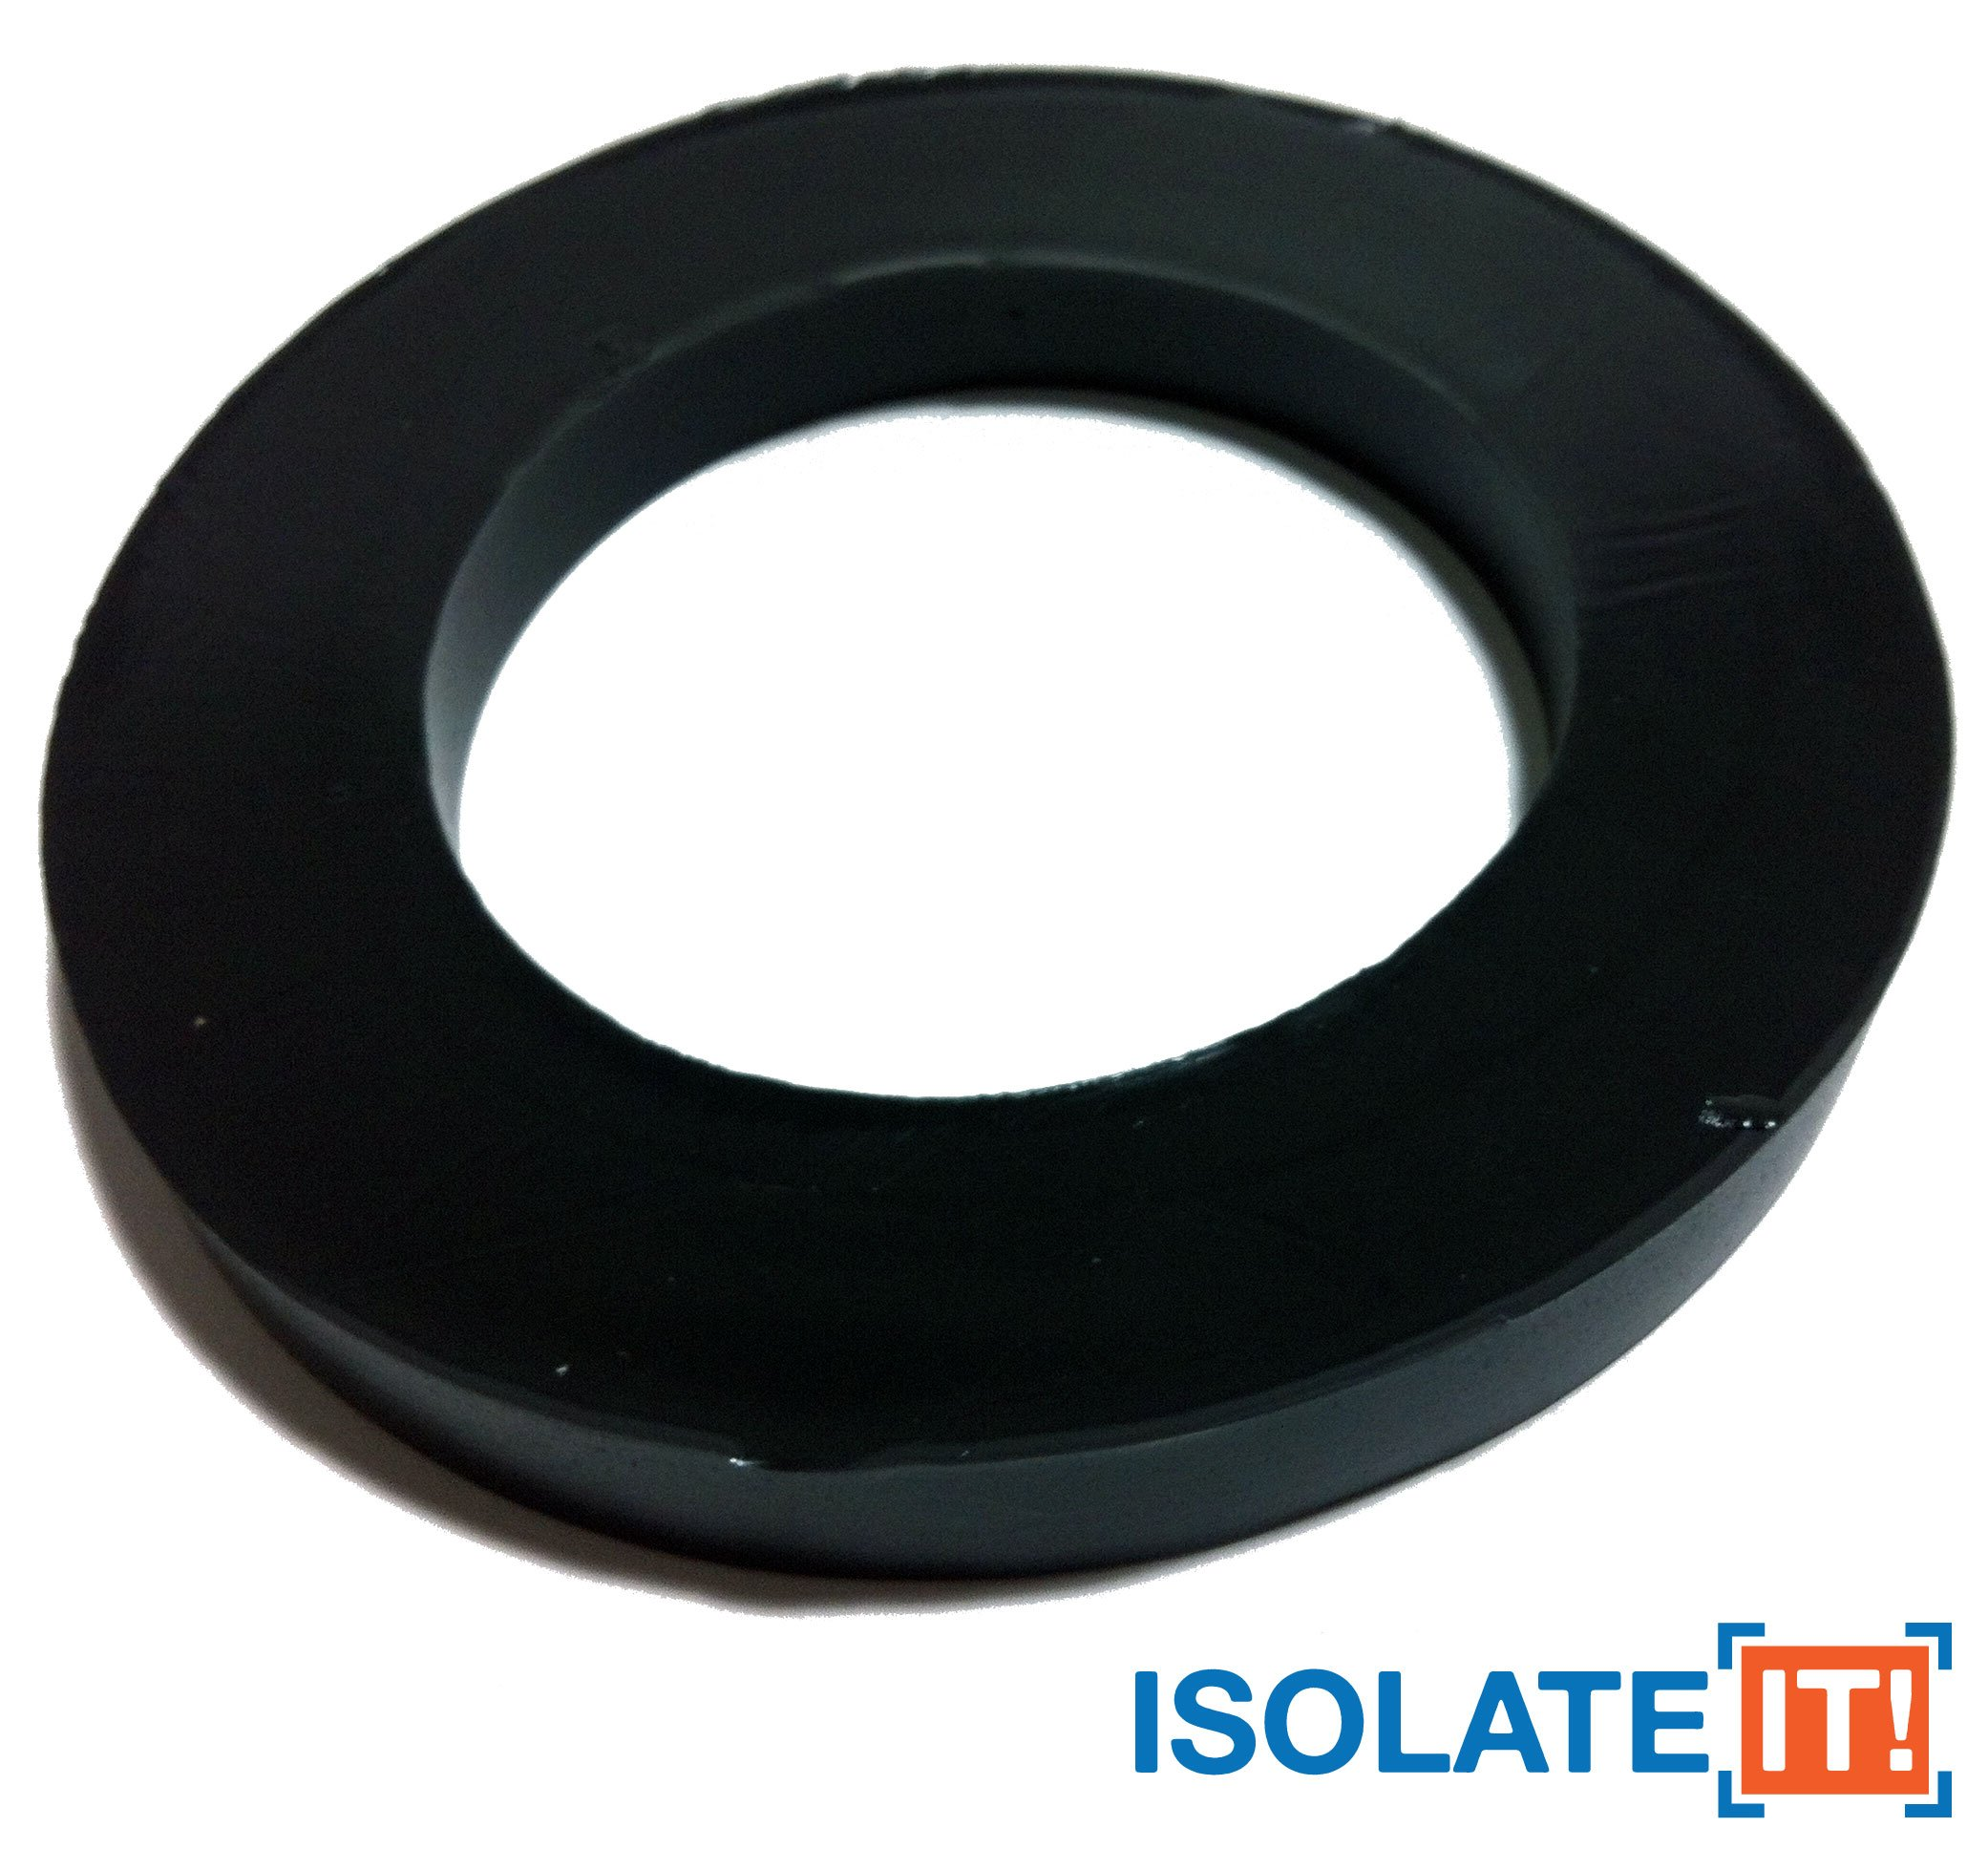 Isolate It: Sorbothane Large Vibration Isolation Washer 5'' OD x 3.1'' ID x 0.5'' Thick 70 Duro - 4 Pack